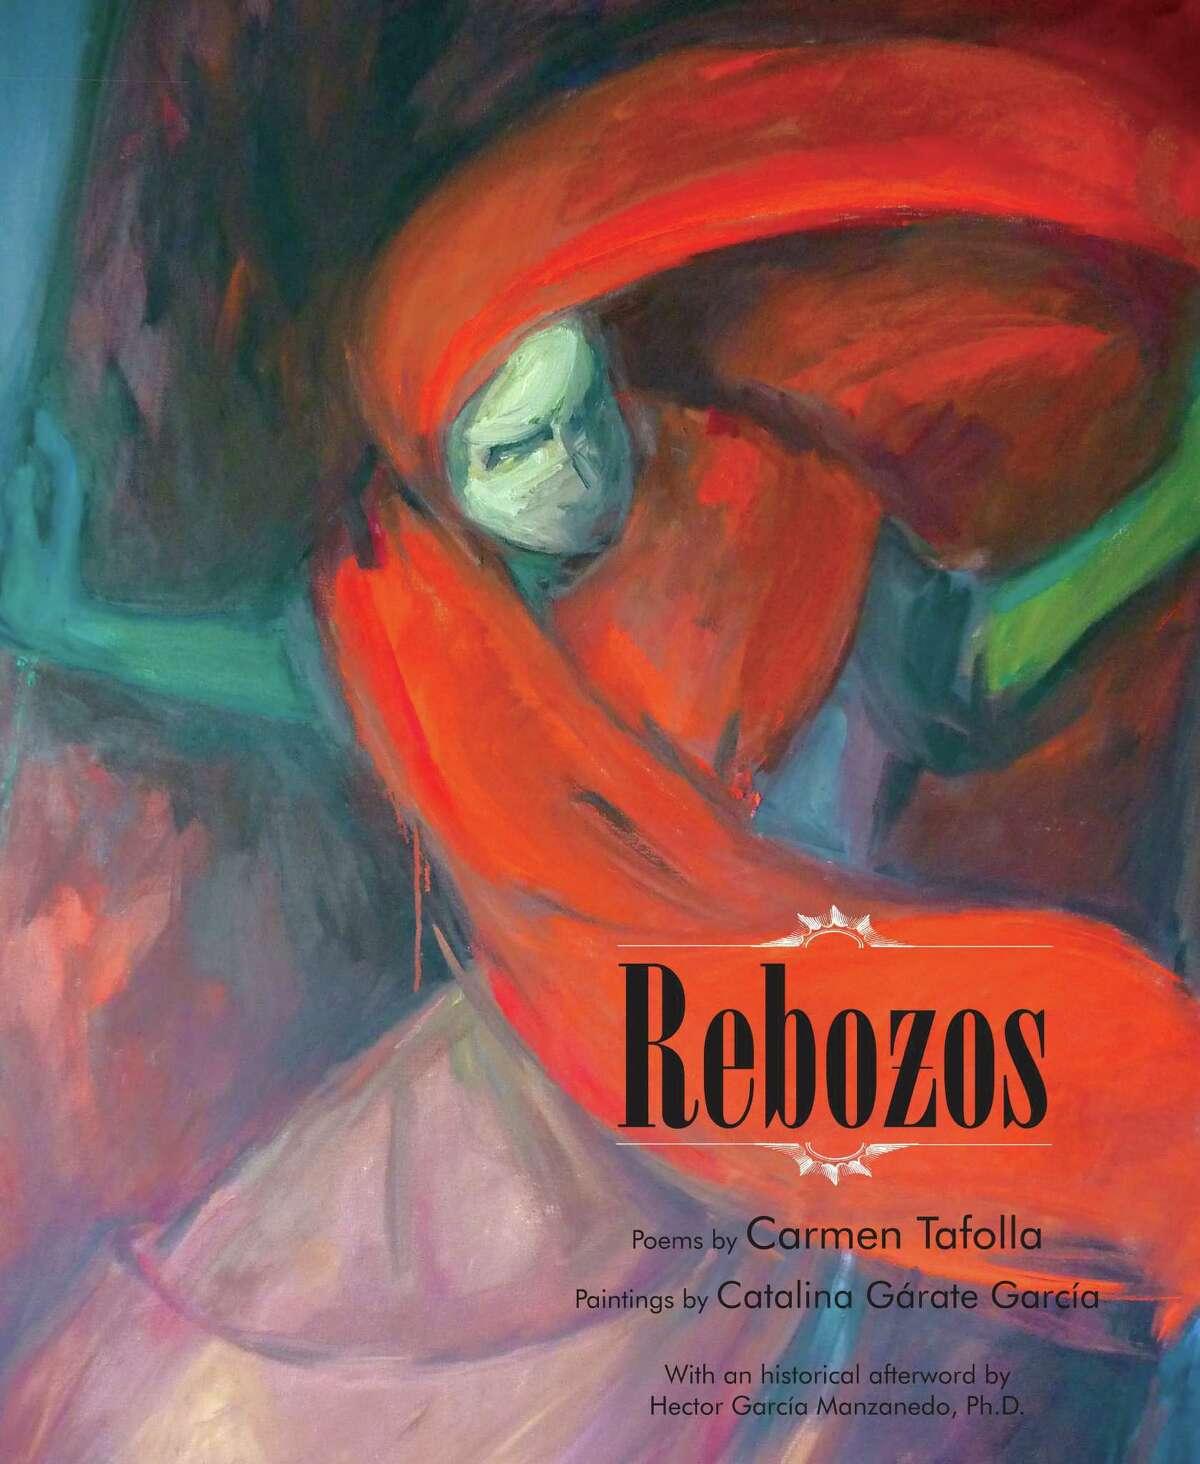 """""""Rebozos"""" - which features passionate poems by San Antonio's Poet Laureate Carmen Tafolla and haunting paintings by California artist Catalina Gárate García - is a magnificent art book that recreates the originality of Mexican rebozos in vivid images and colors."""